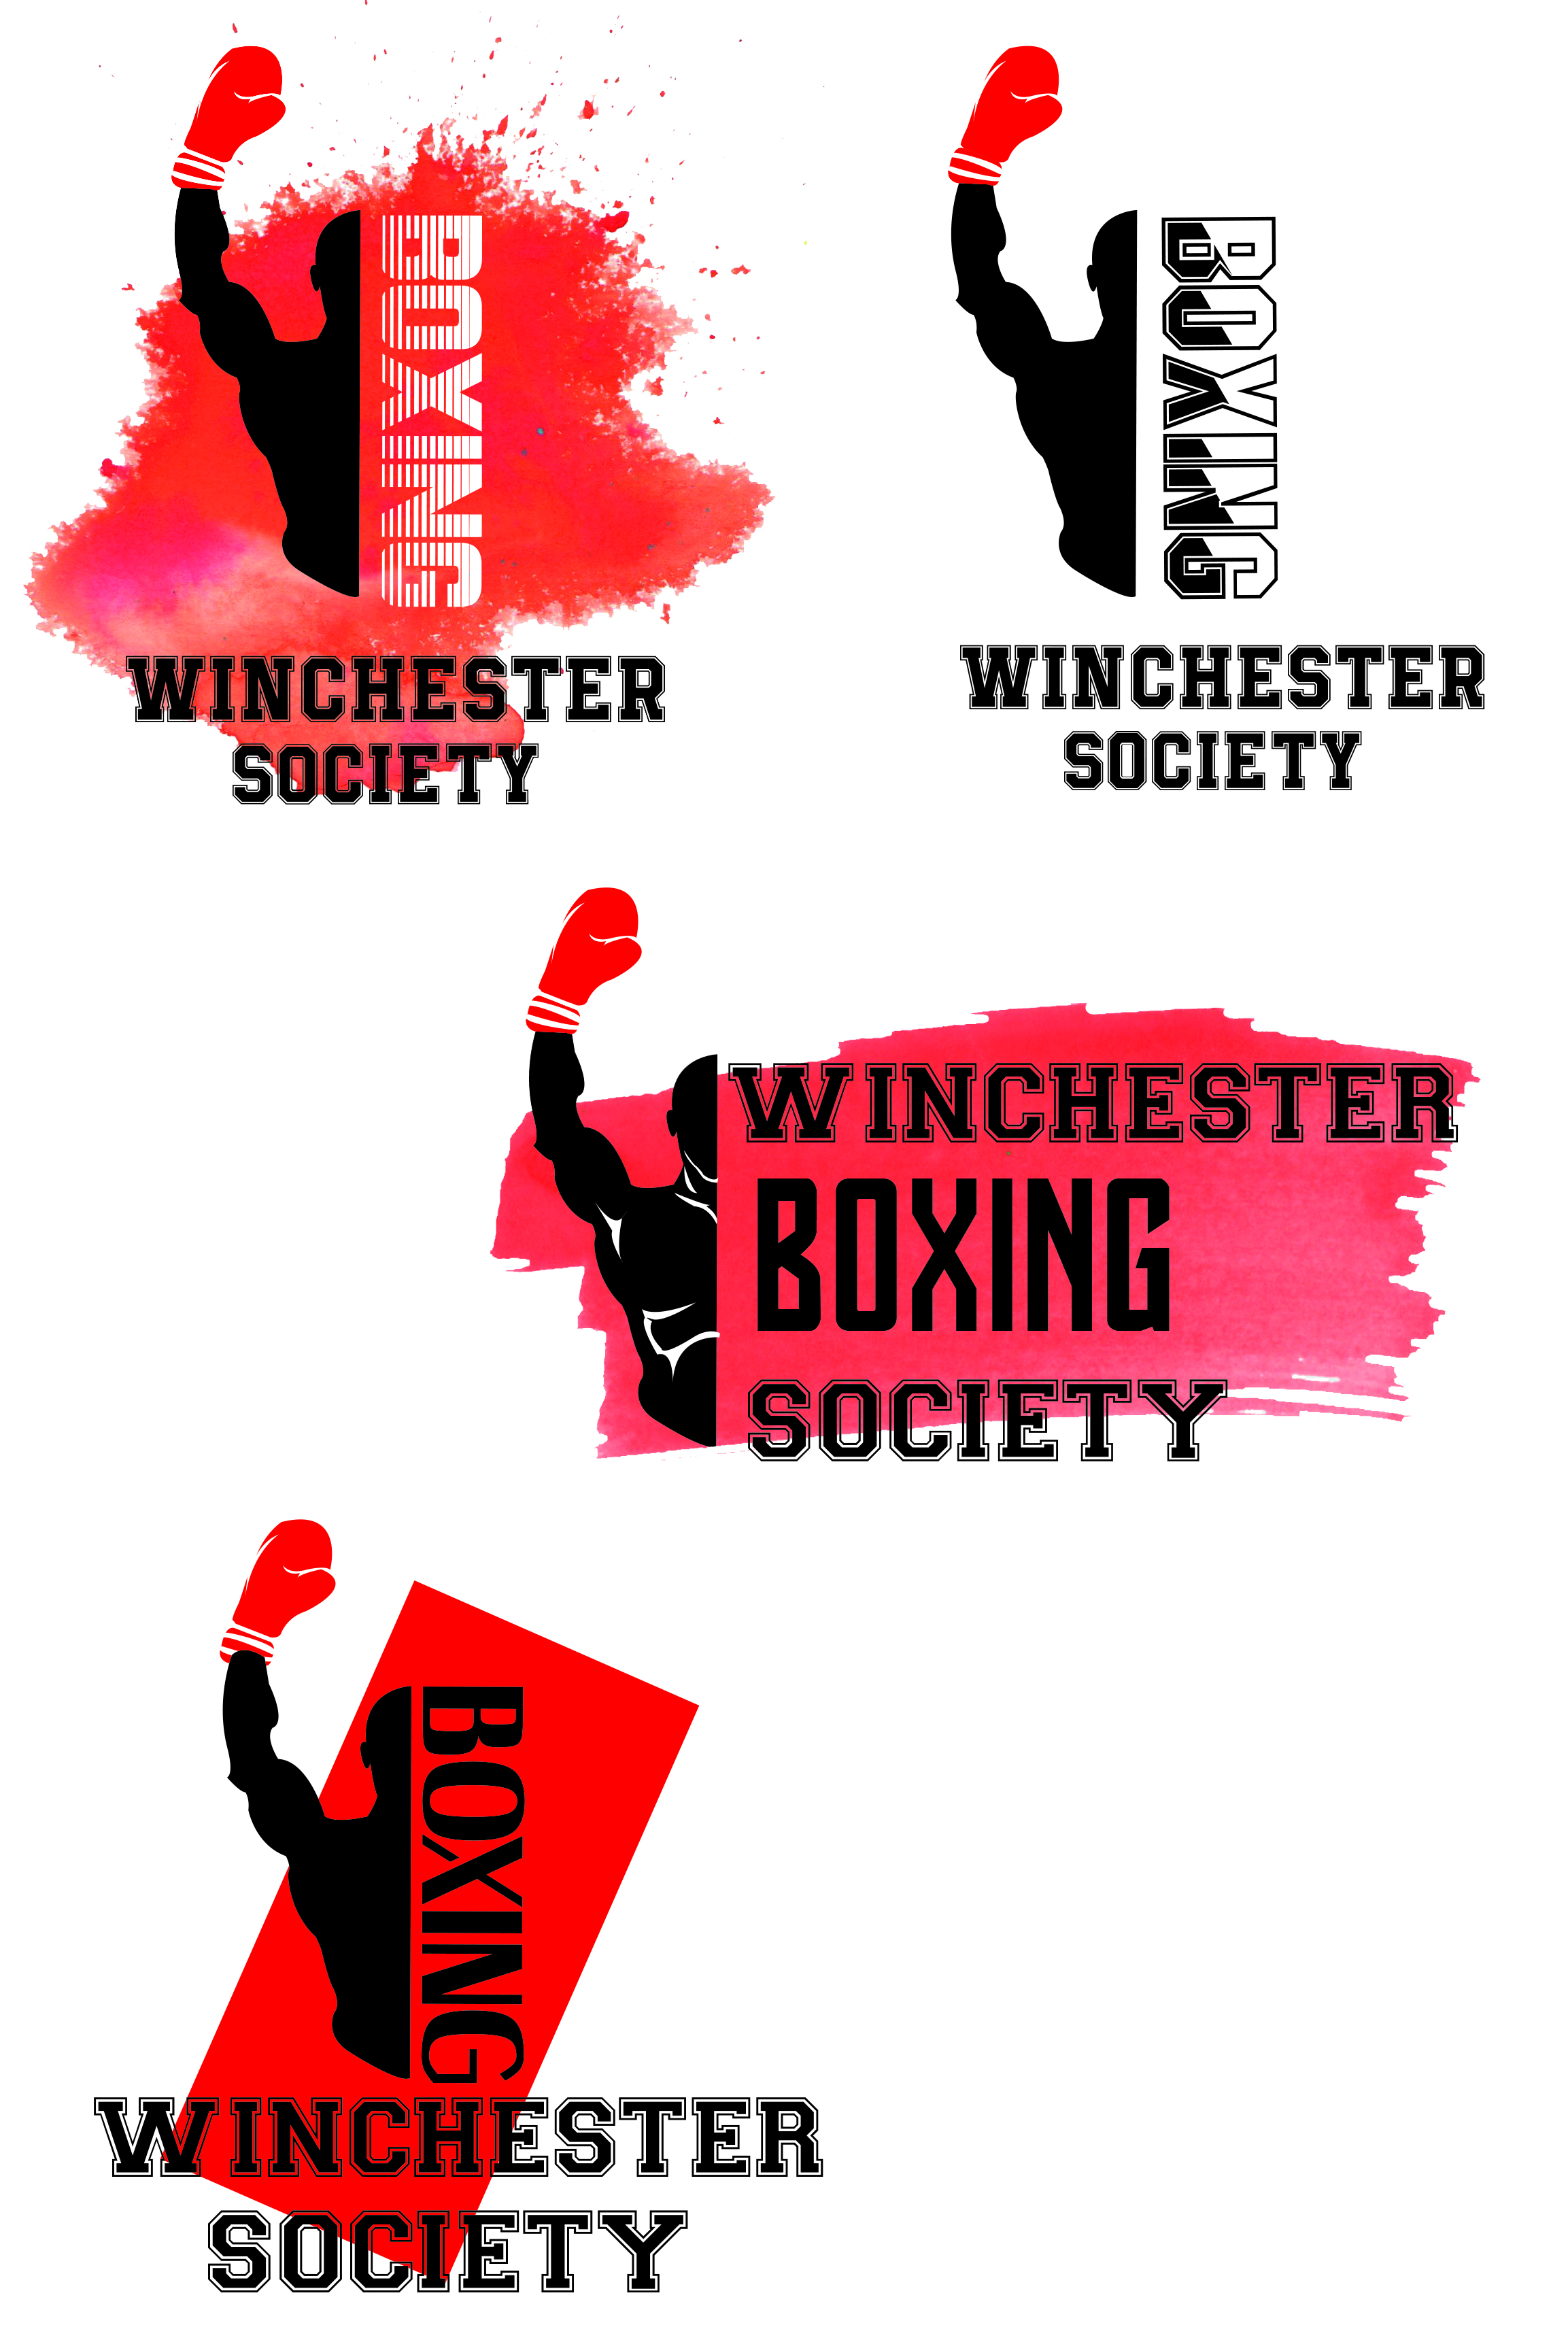 Logoboxingsociety5color